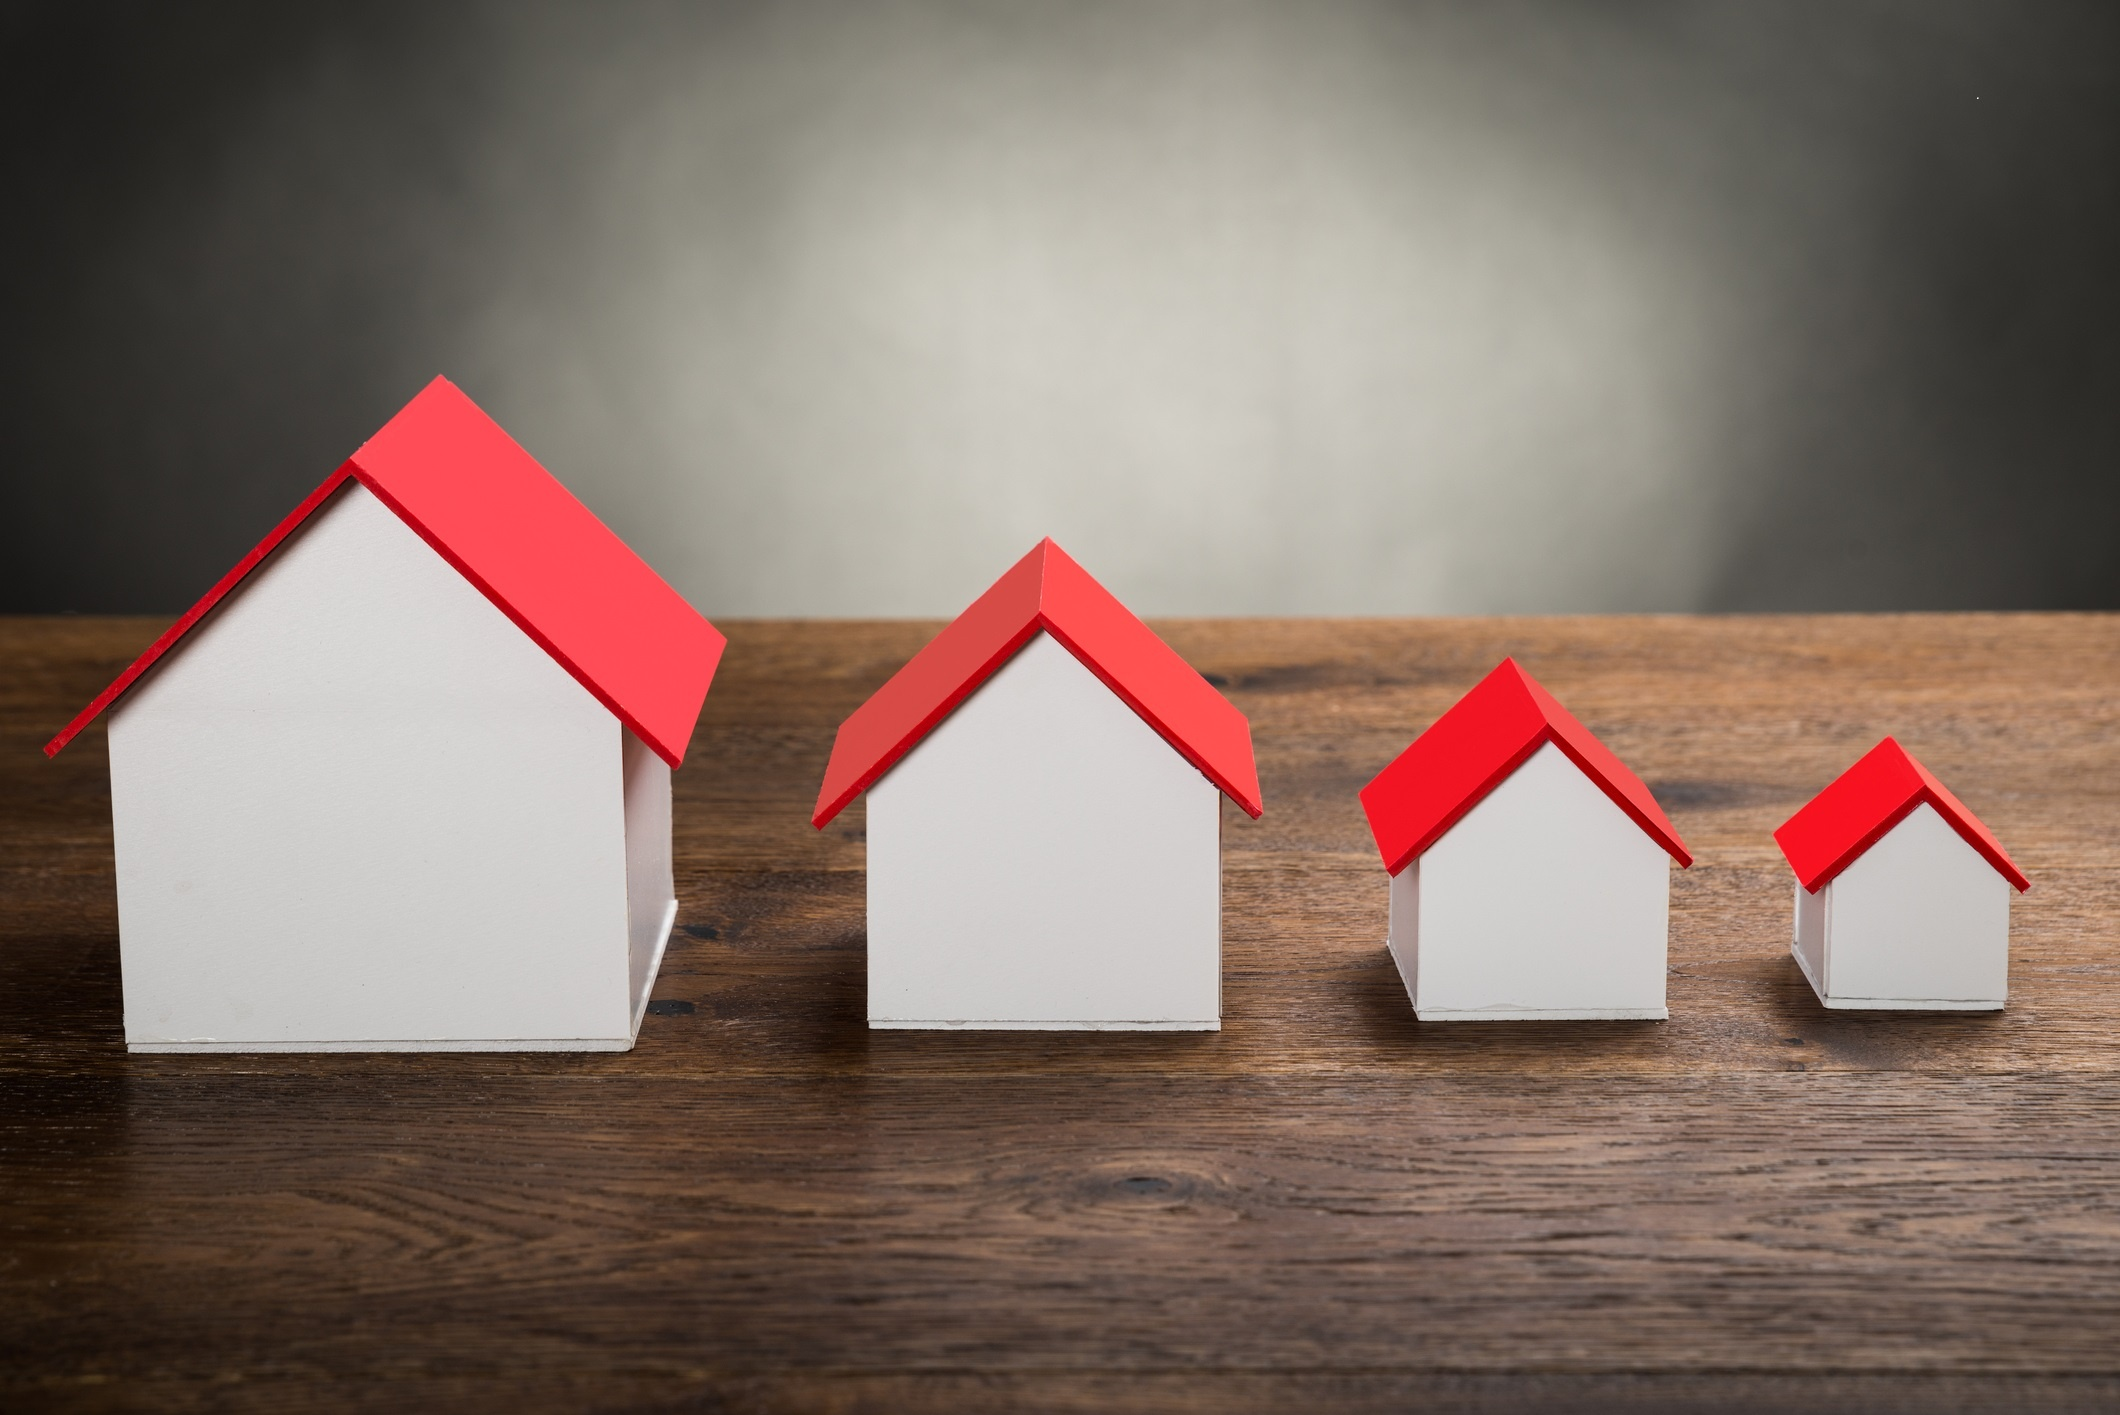 Downsizing Your Home? Make it Easier with These 6 Tips